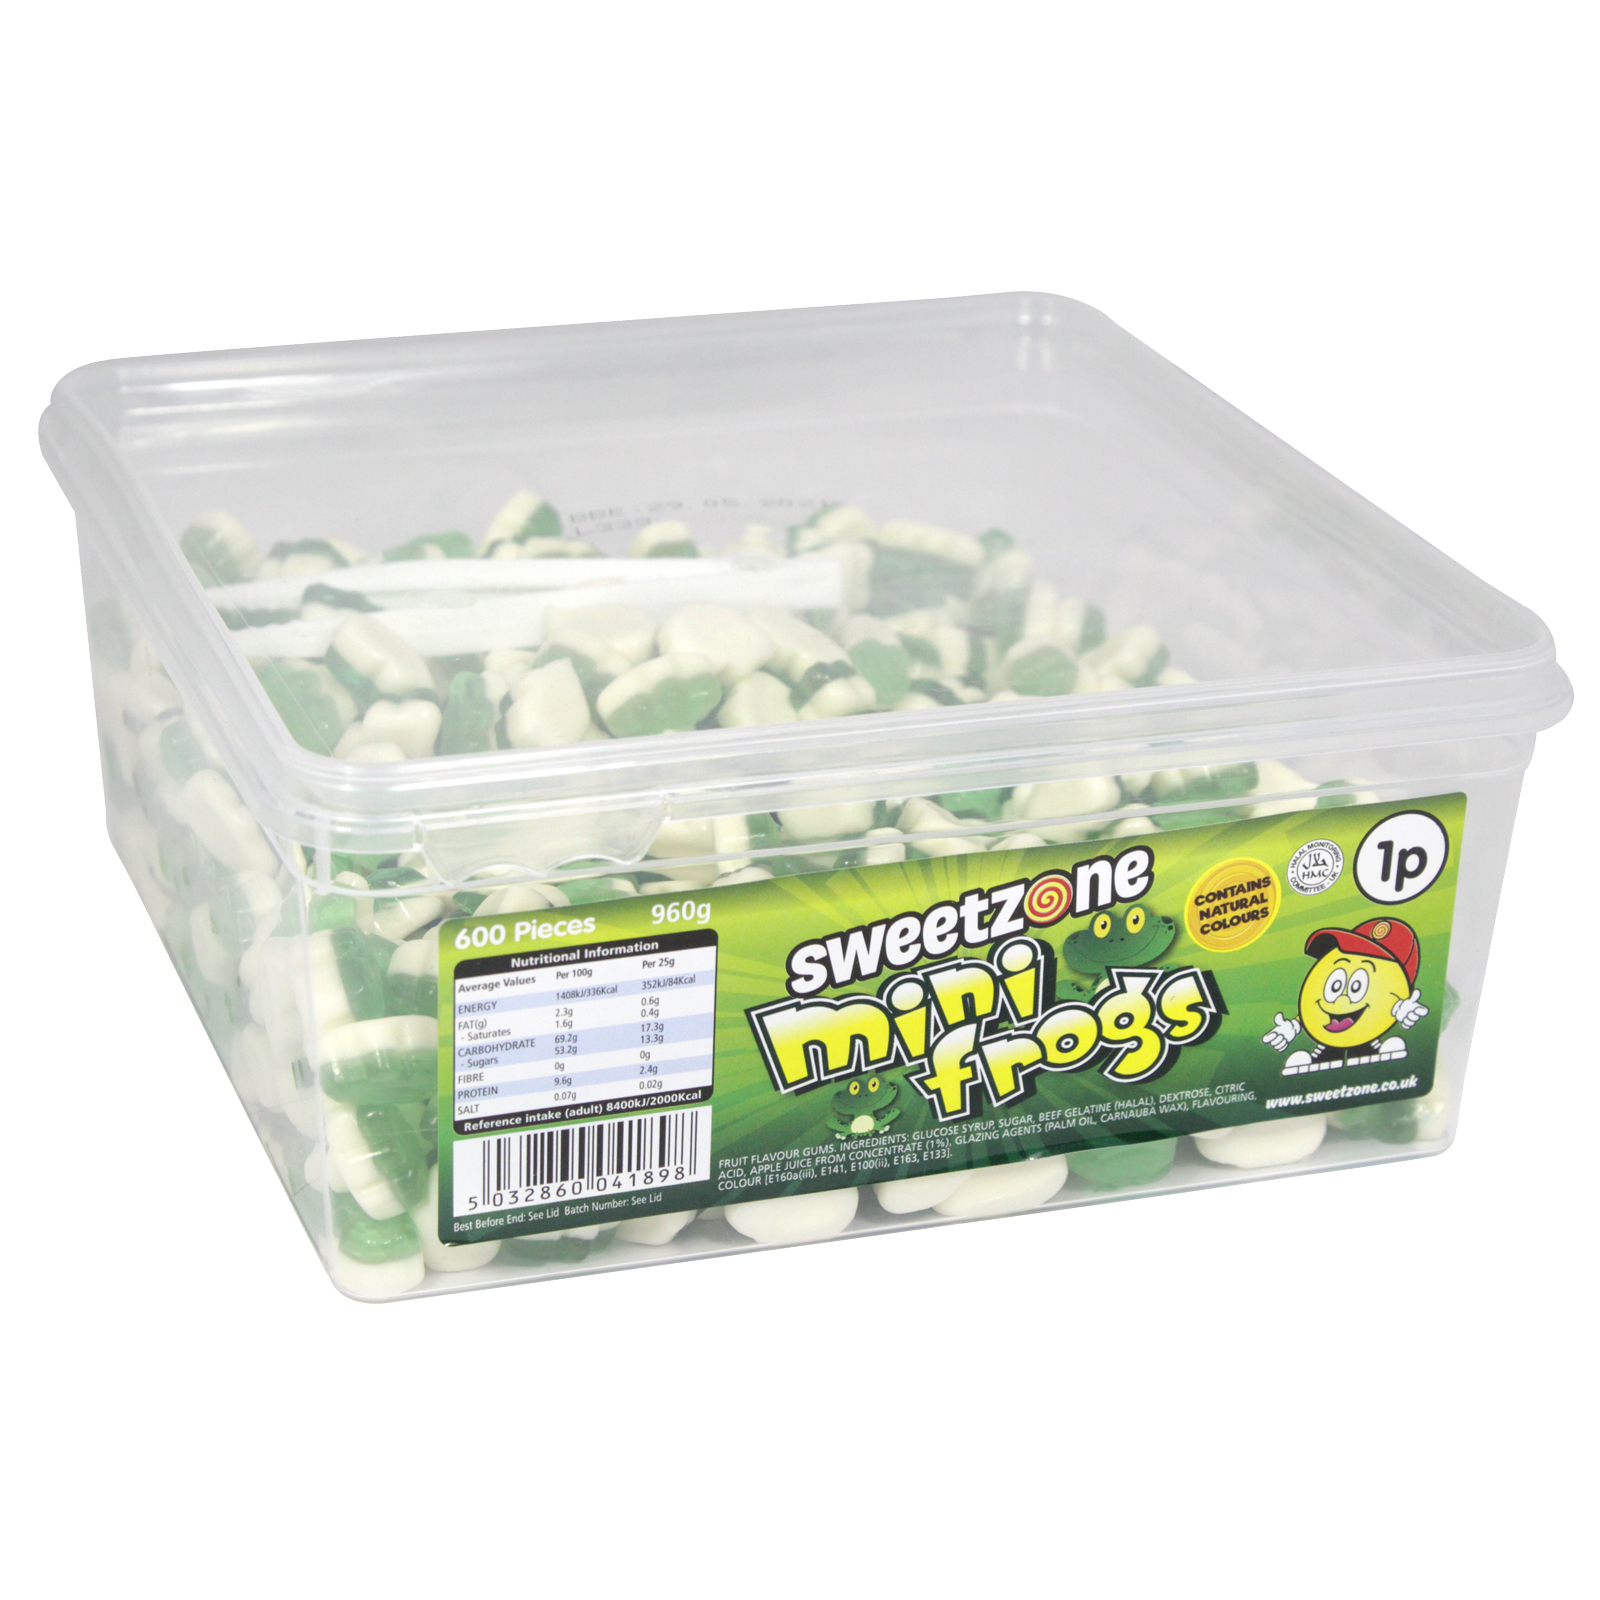 SWEETZONE MINI FROGS TUB 600 PIECES X 1P